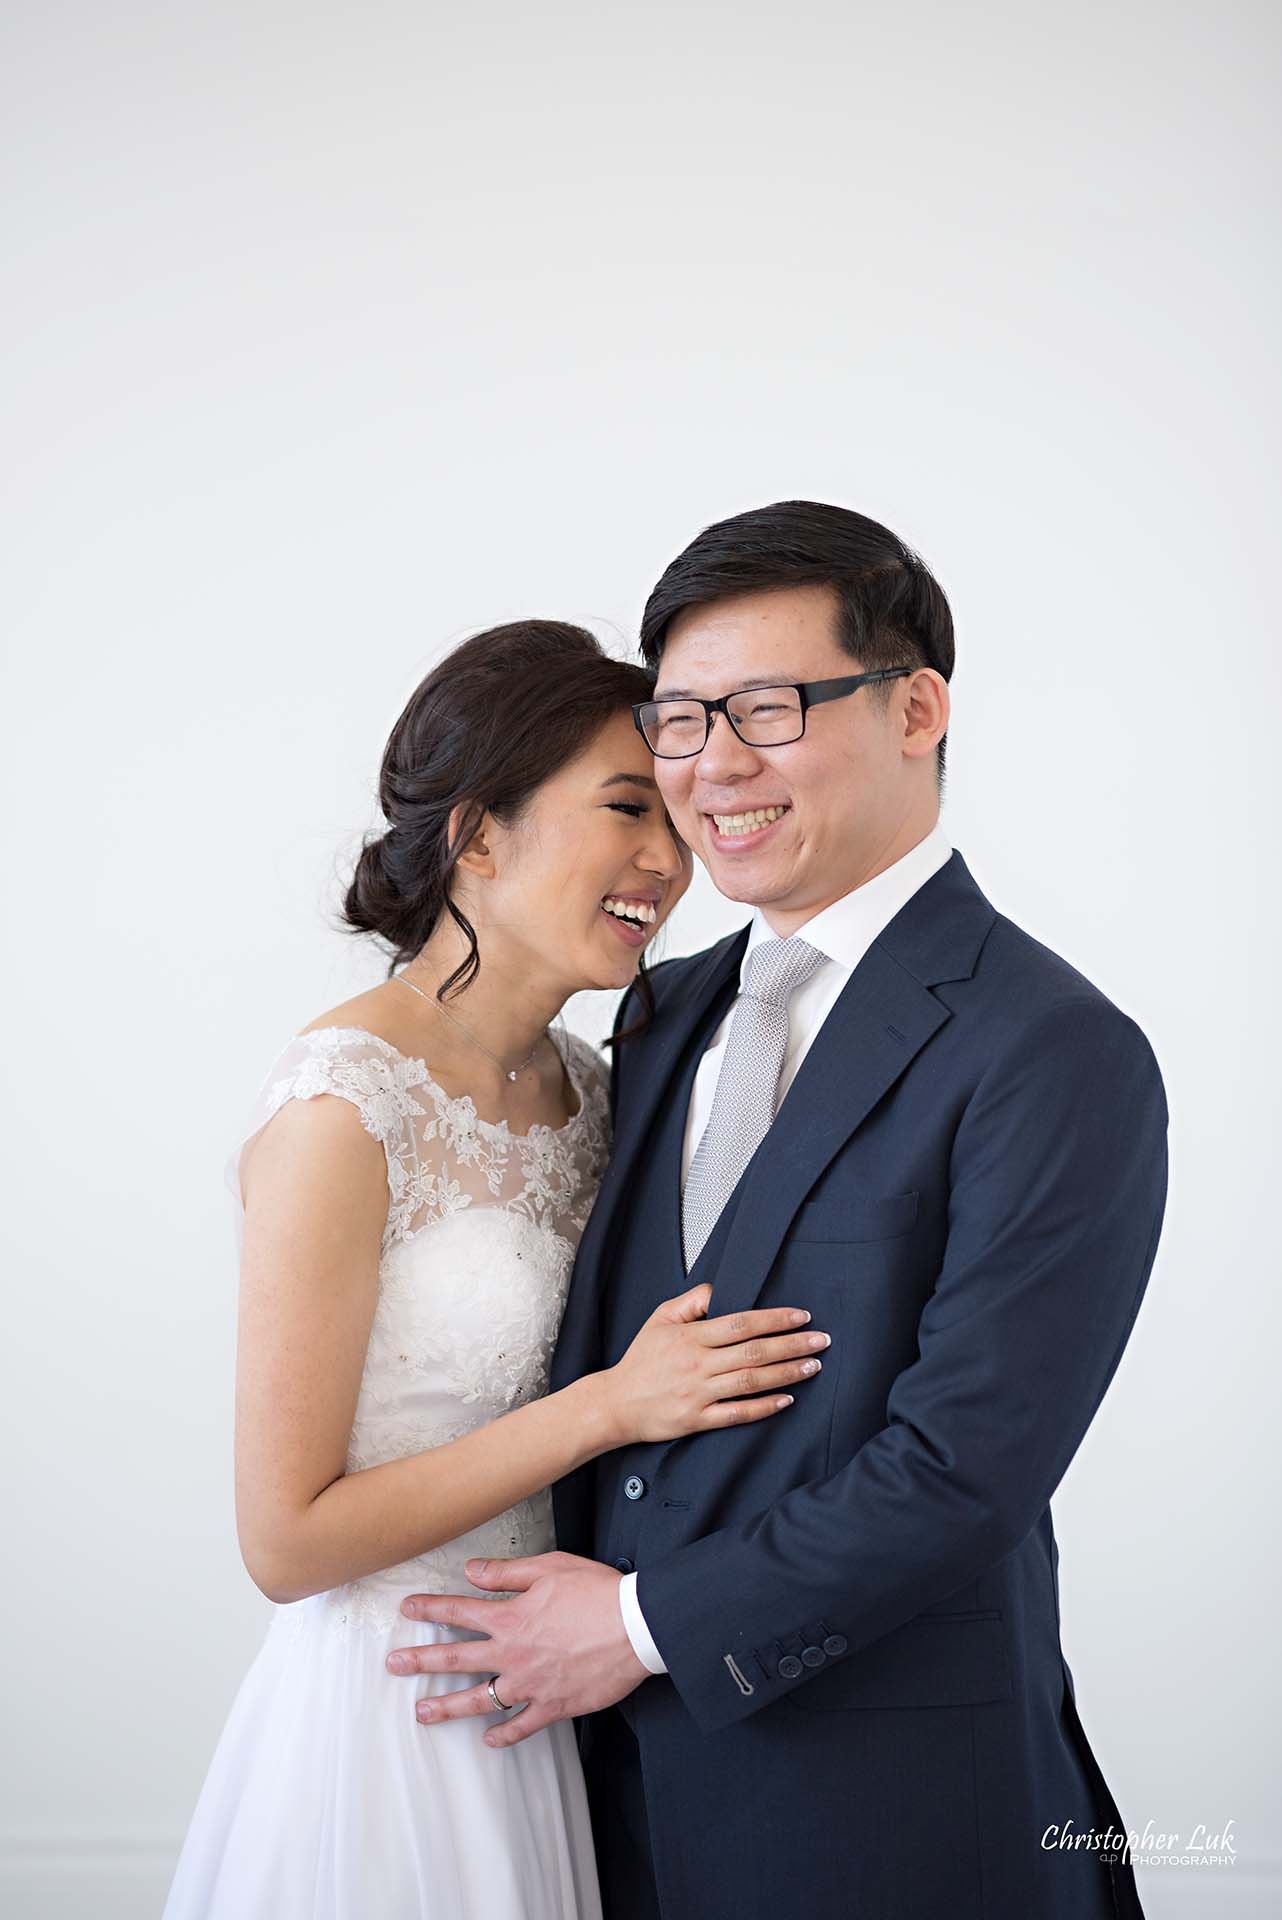 Christopher Luk Toronto Wedding Photographer - Mint Room Studios Bride Groom Natural Candid Photojournalistic Conservatory Ballroom Hug Laugh Holding Each Other Close